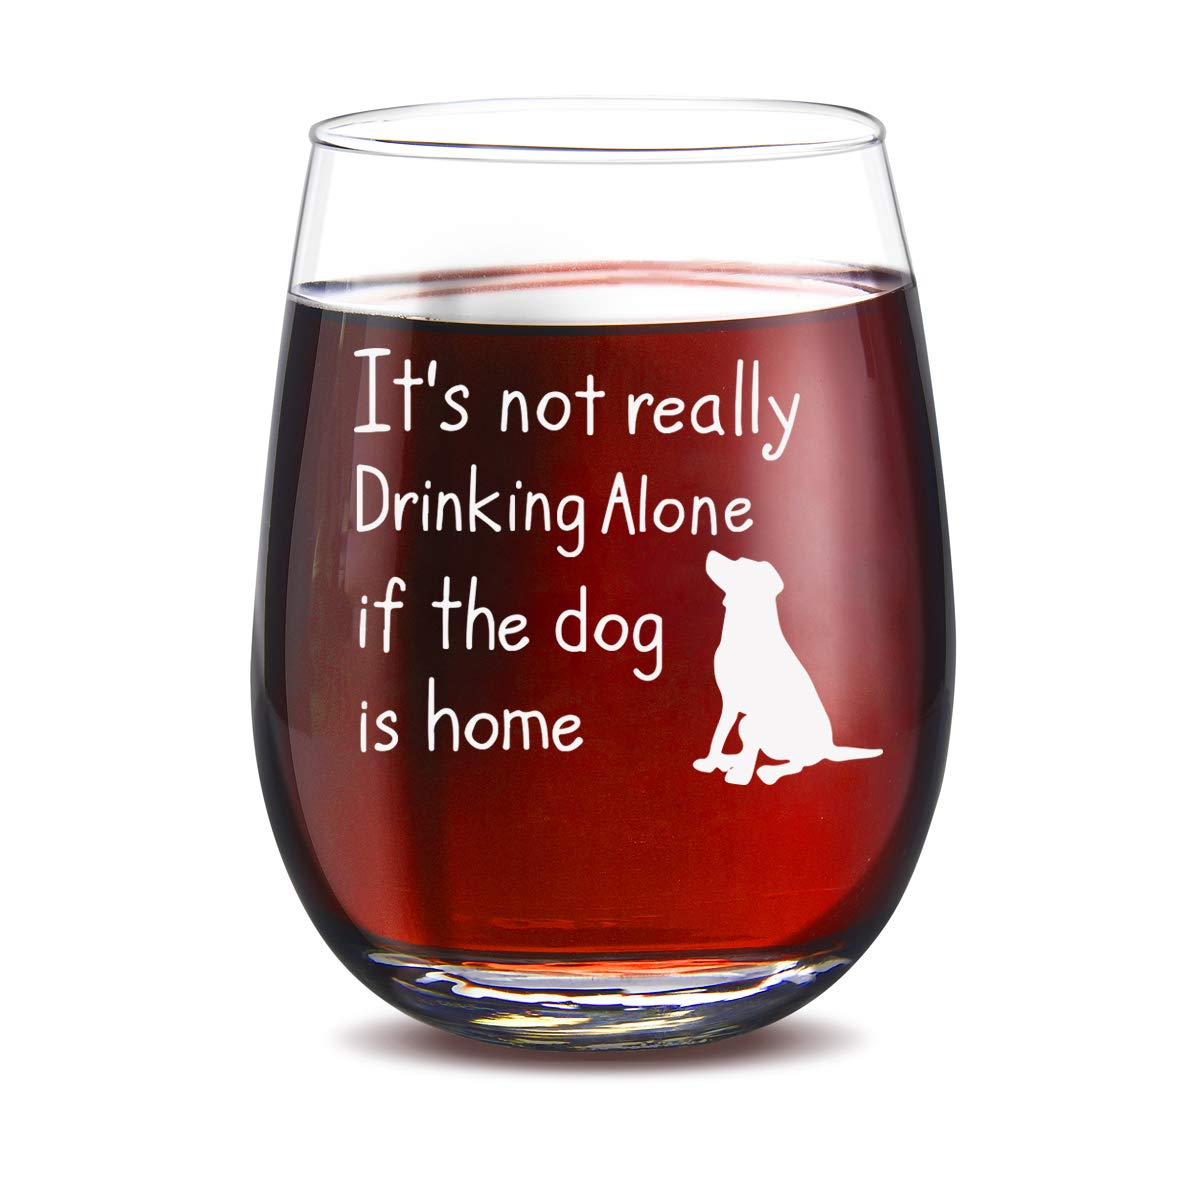 It's not really drinking alone if the dog is home stemless wine glass, 15 oz Perfect gifts for Women Men